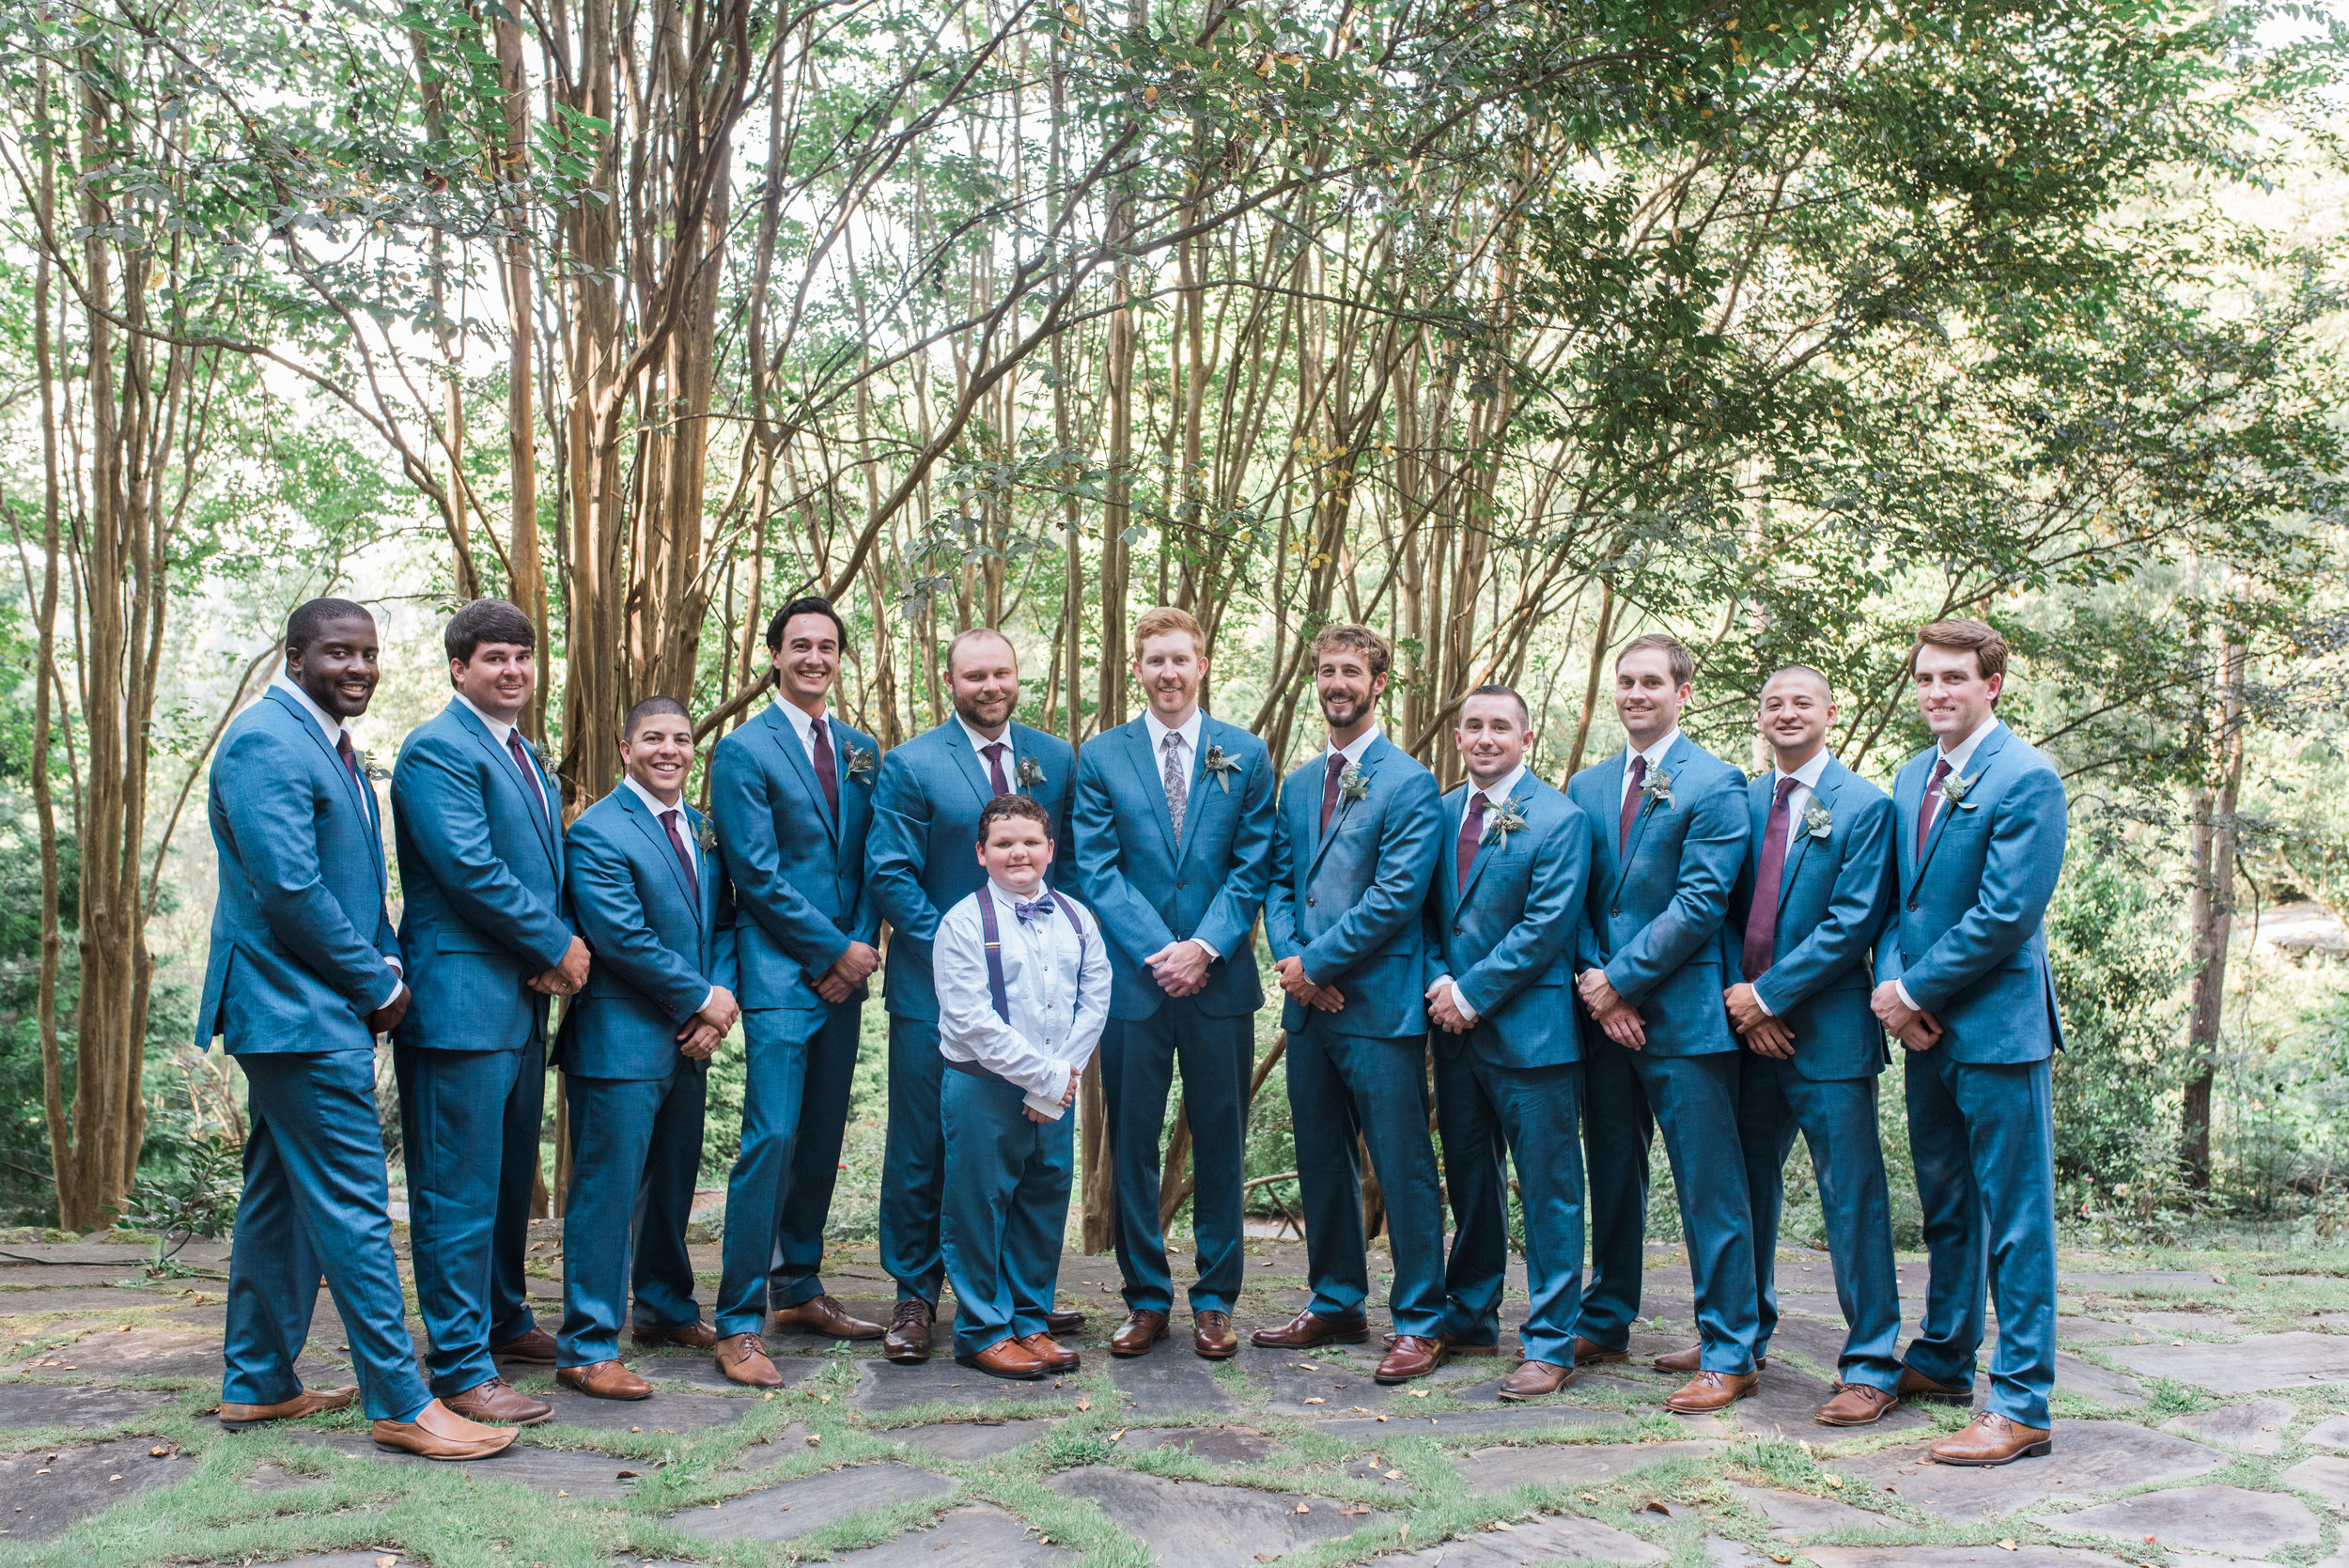 dunaway gardens wedding photographer